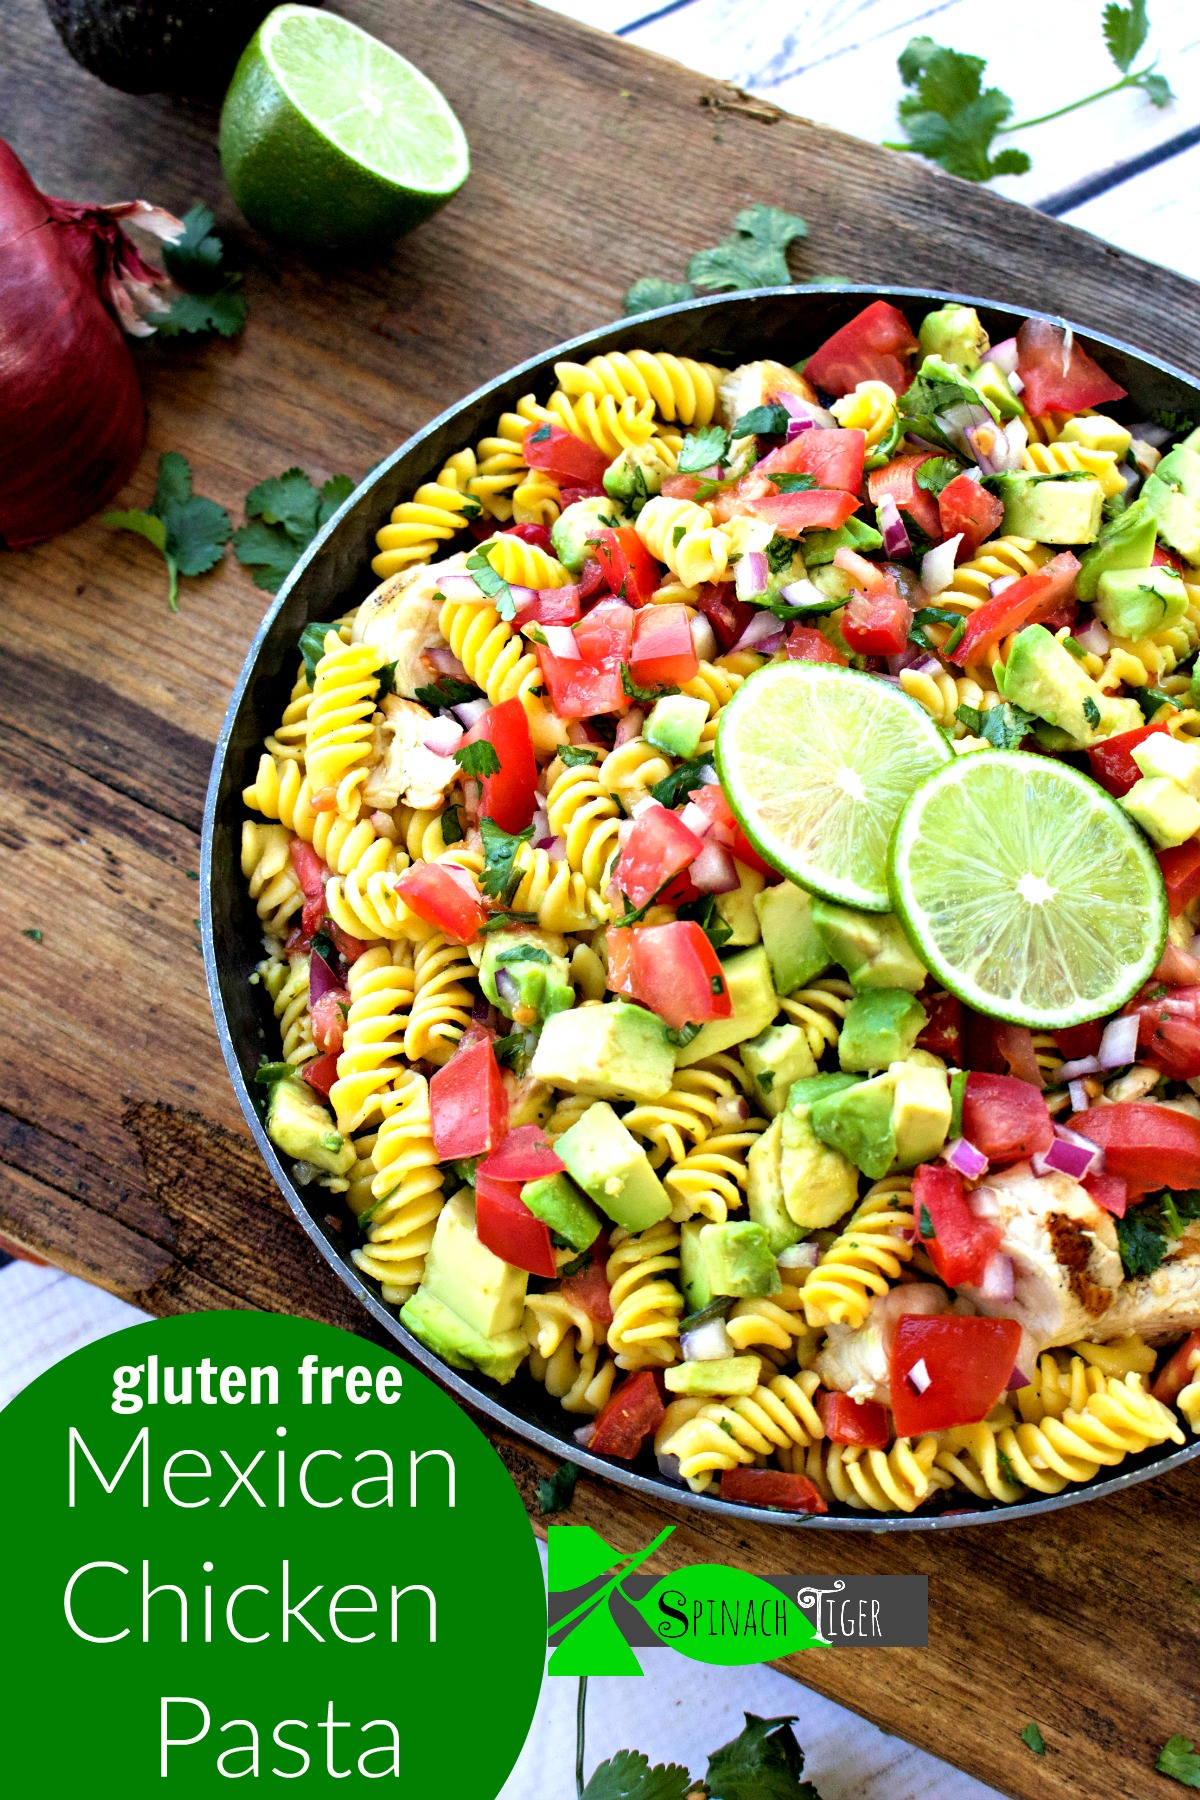 Mexican Chicken Pasta with Avocado from Spinach Tiger